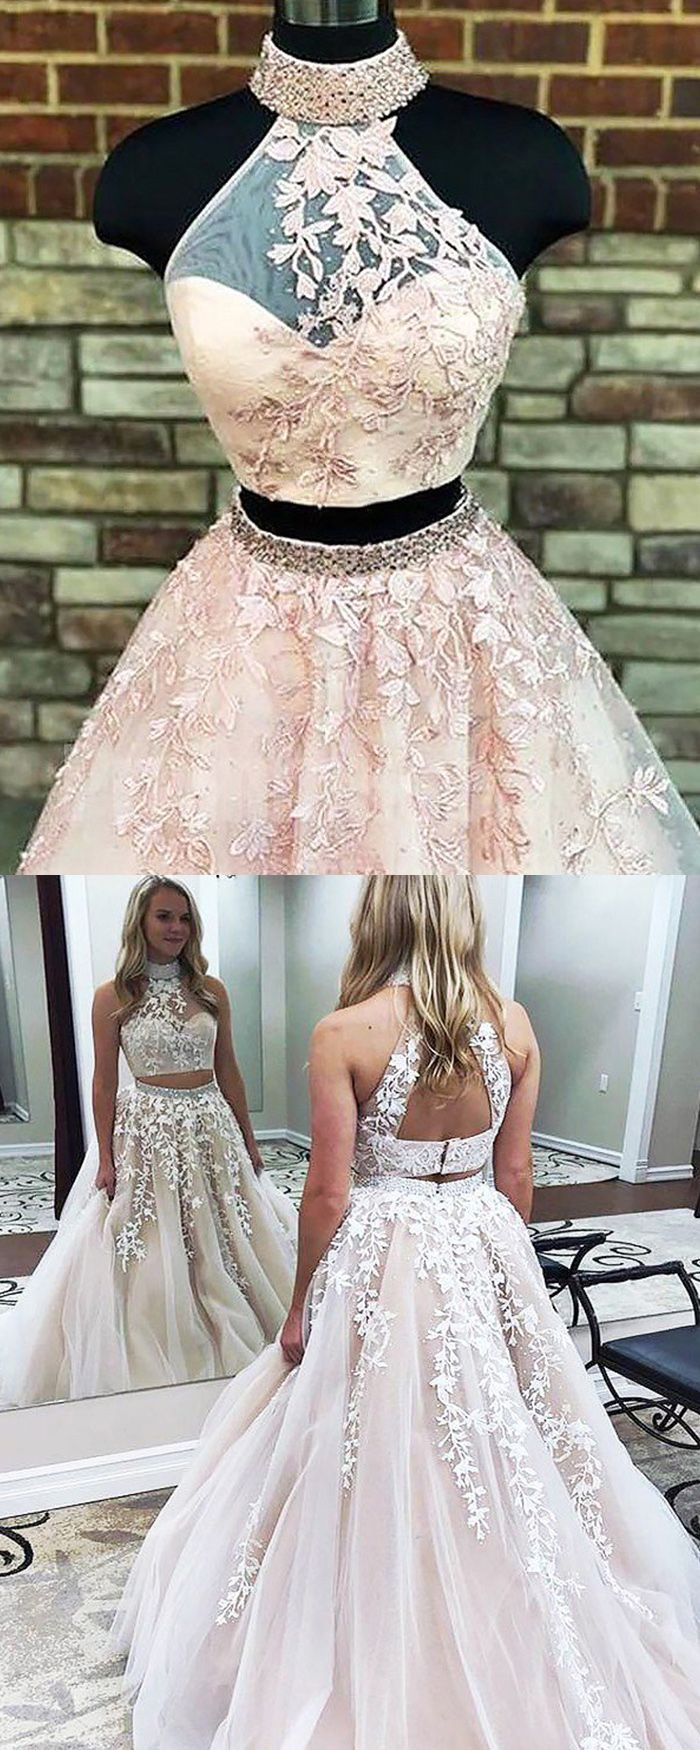 Two Piece High Neck Pearl Pink Ball Gown Prom Dress With Appliques Pm1140 Formal Dresses Long Junior Prom Dresses Prom Dresses Ball Gown [ 1750 x 700 Pixel ]